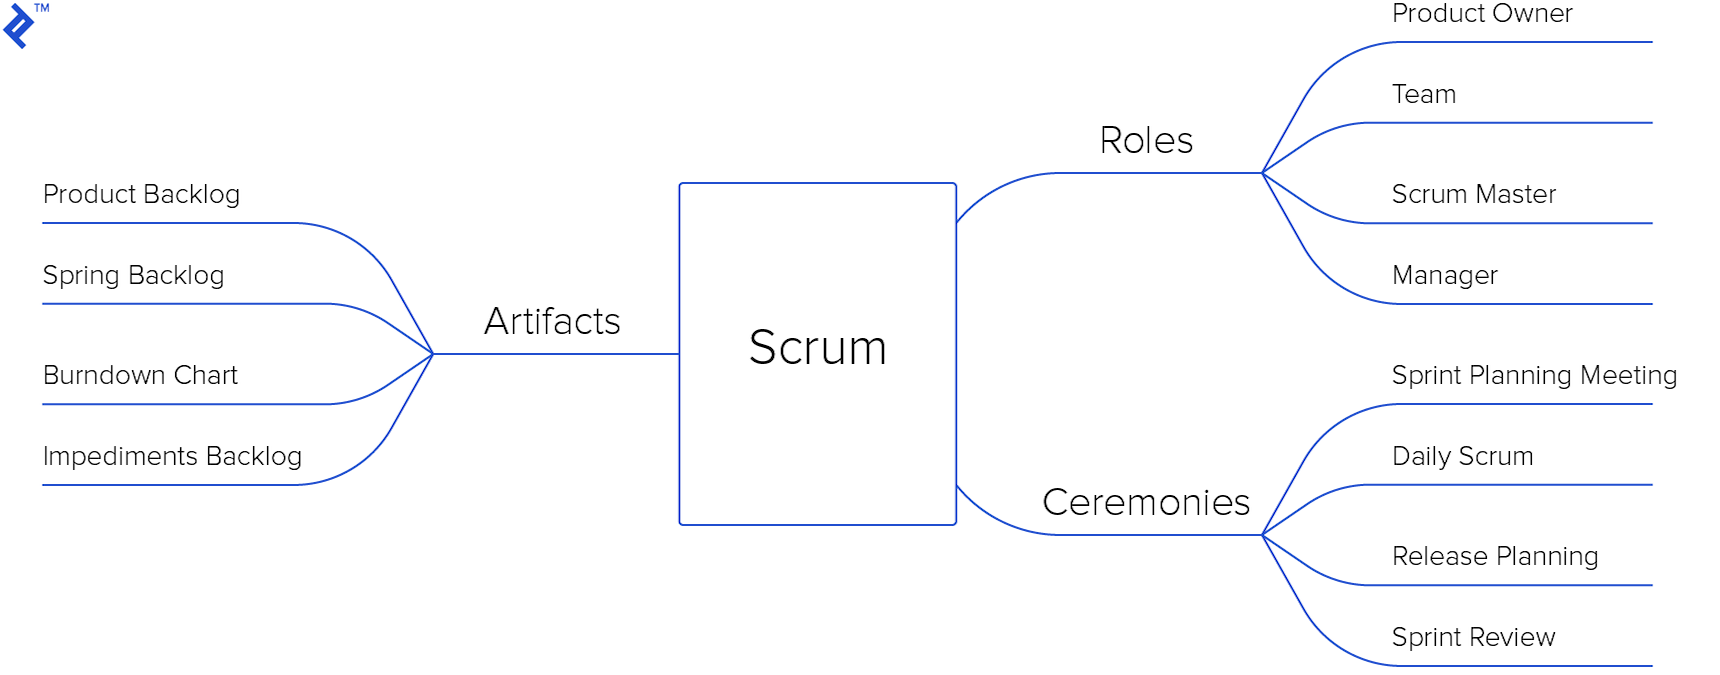 A mind map diagram outlining main concepts of Scrum.